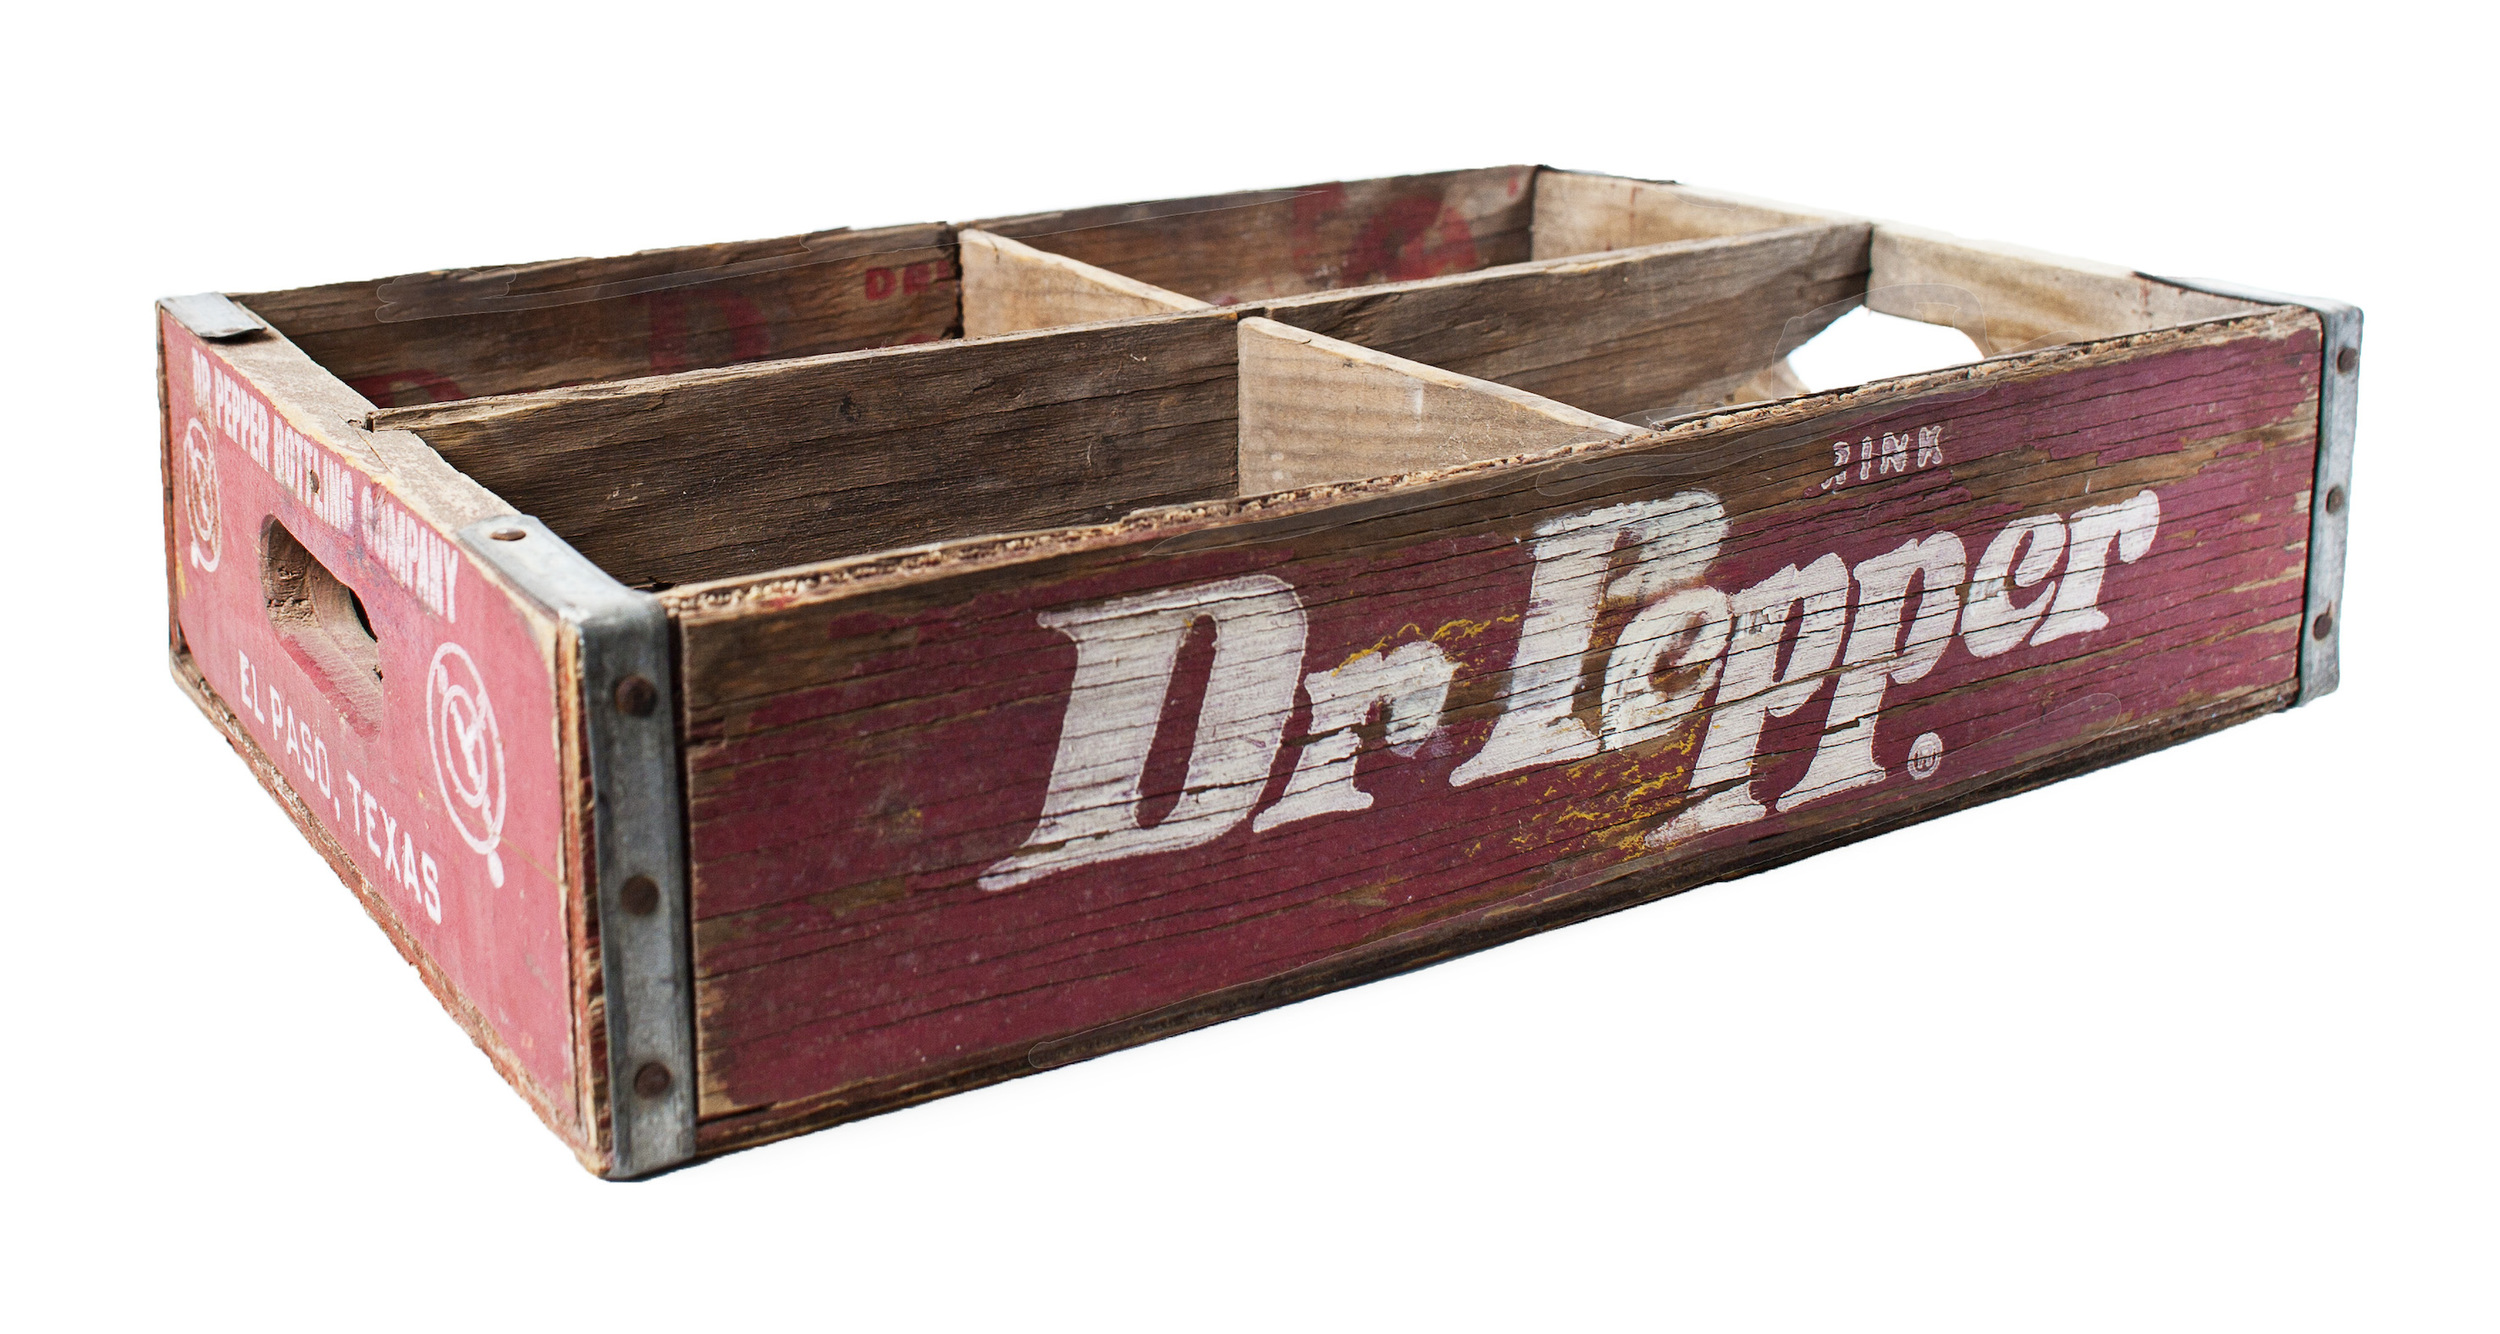 Dr. Pepper Crate